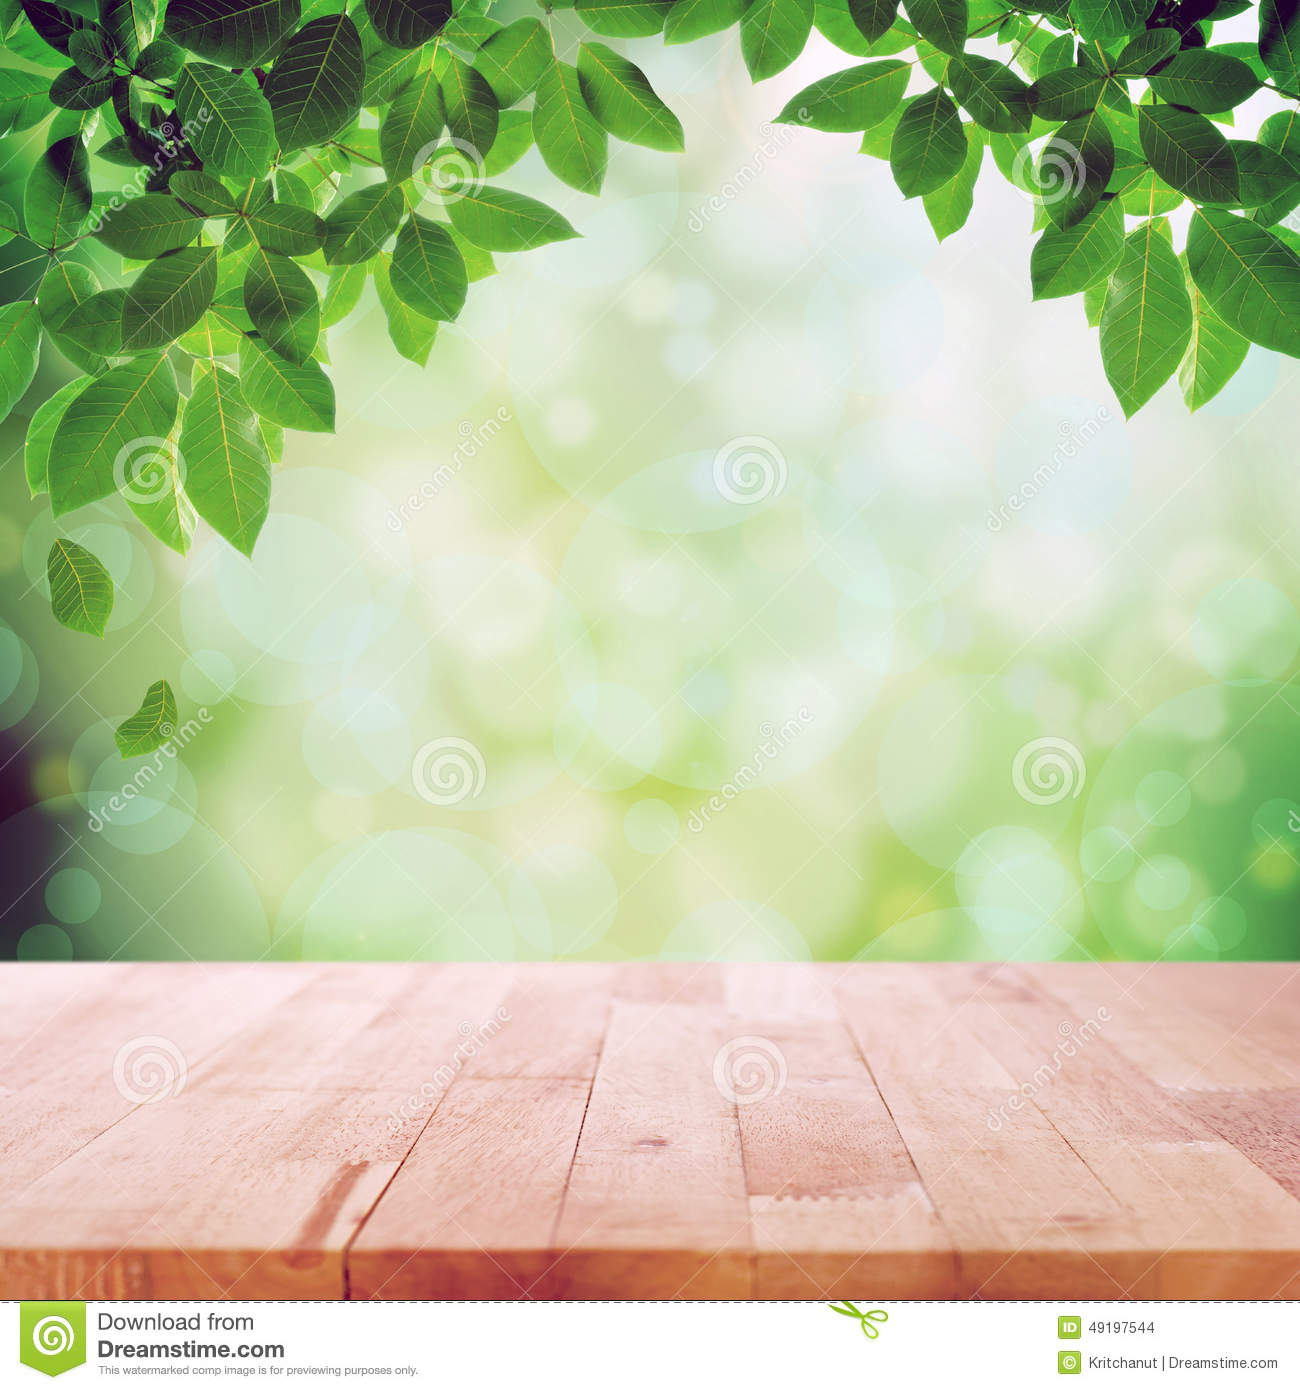 Wood table background hd - Abstract Background Bokeh Green Leaves Nature Table Top Wood